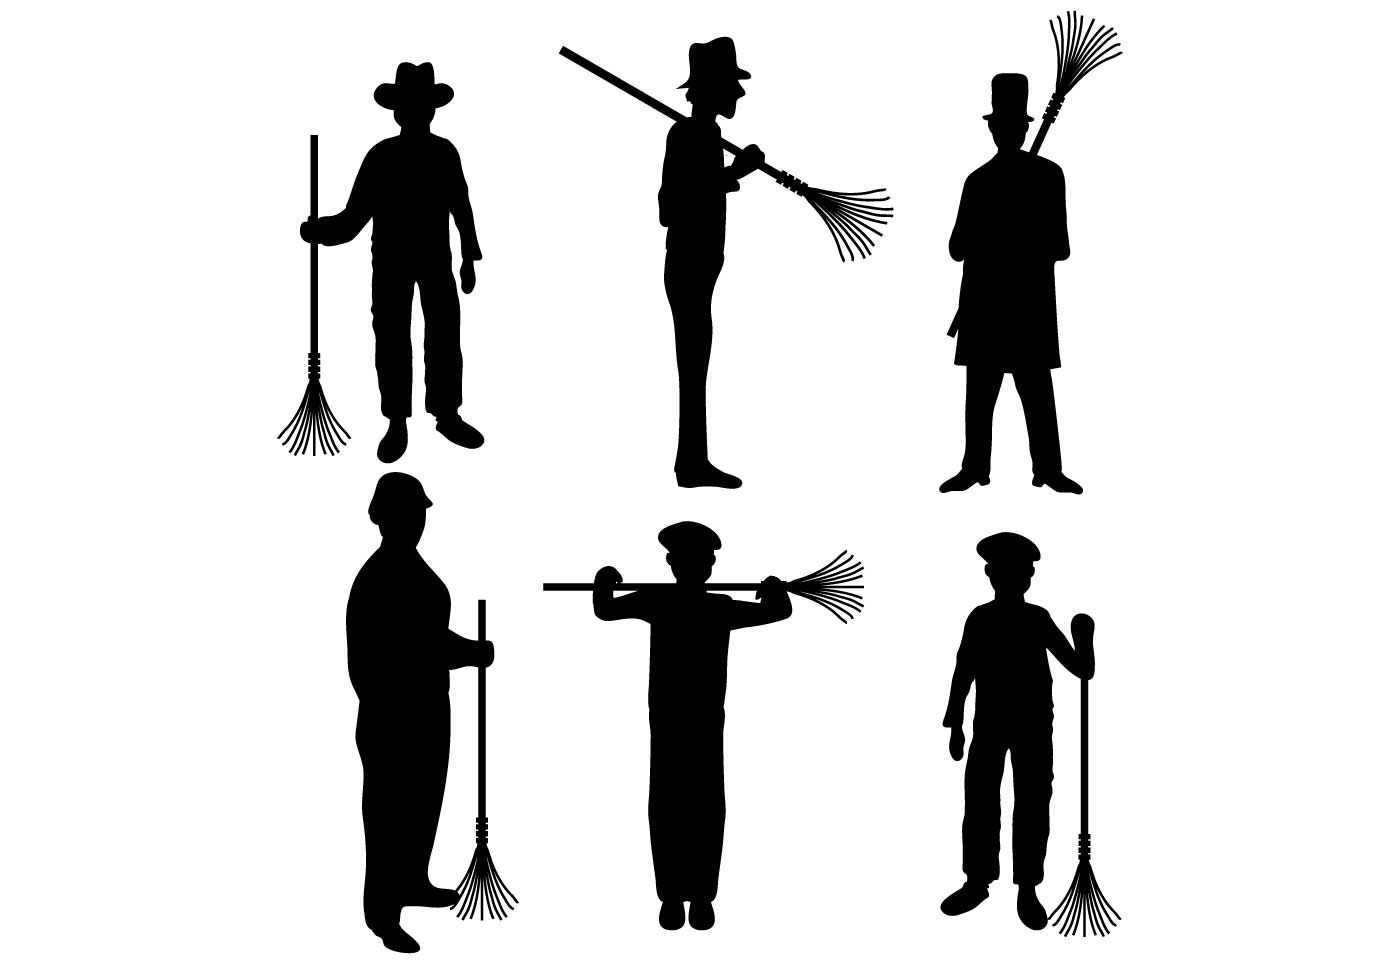 Chimney Sweep Vector  Download Free Vector Art Stock Graphics  Images